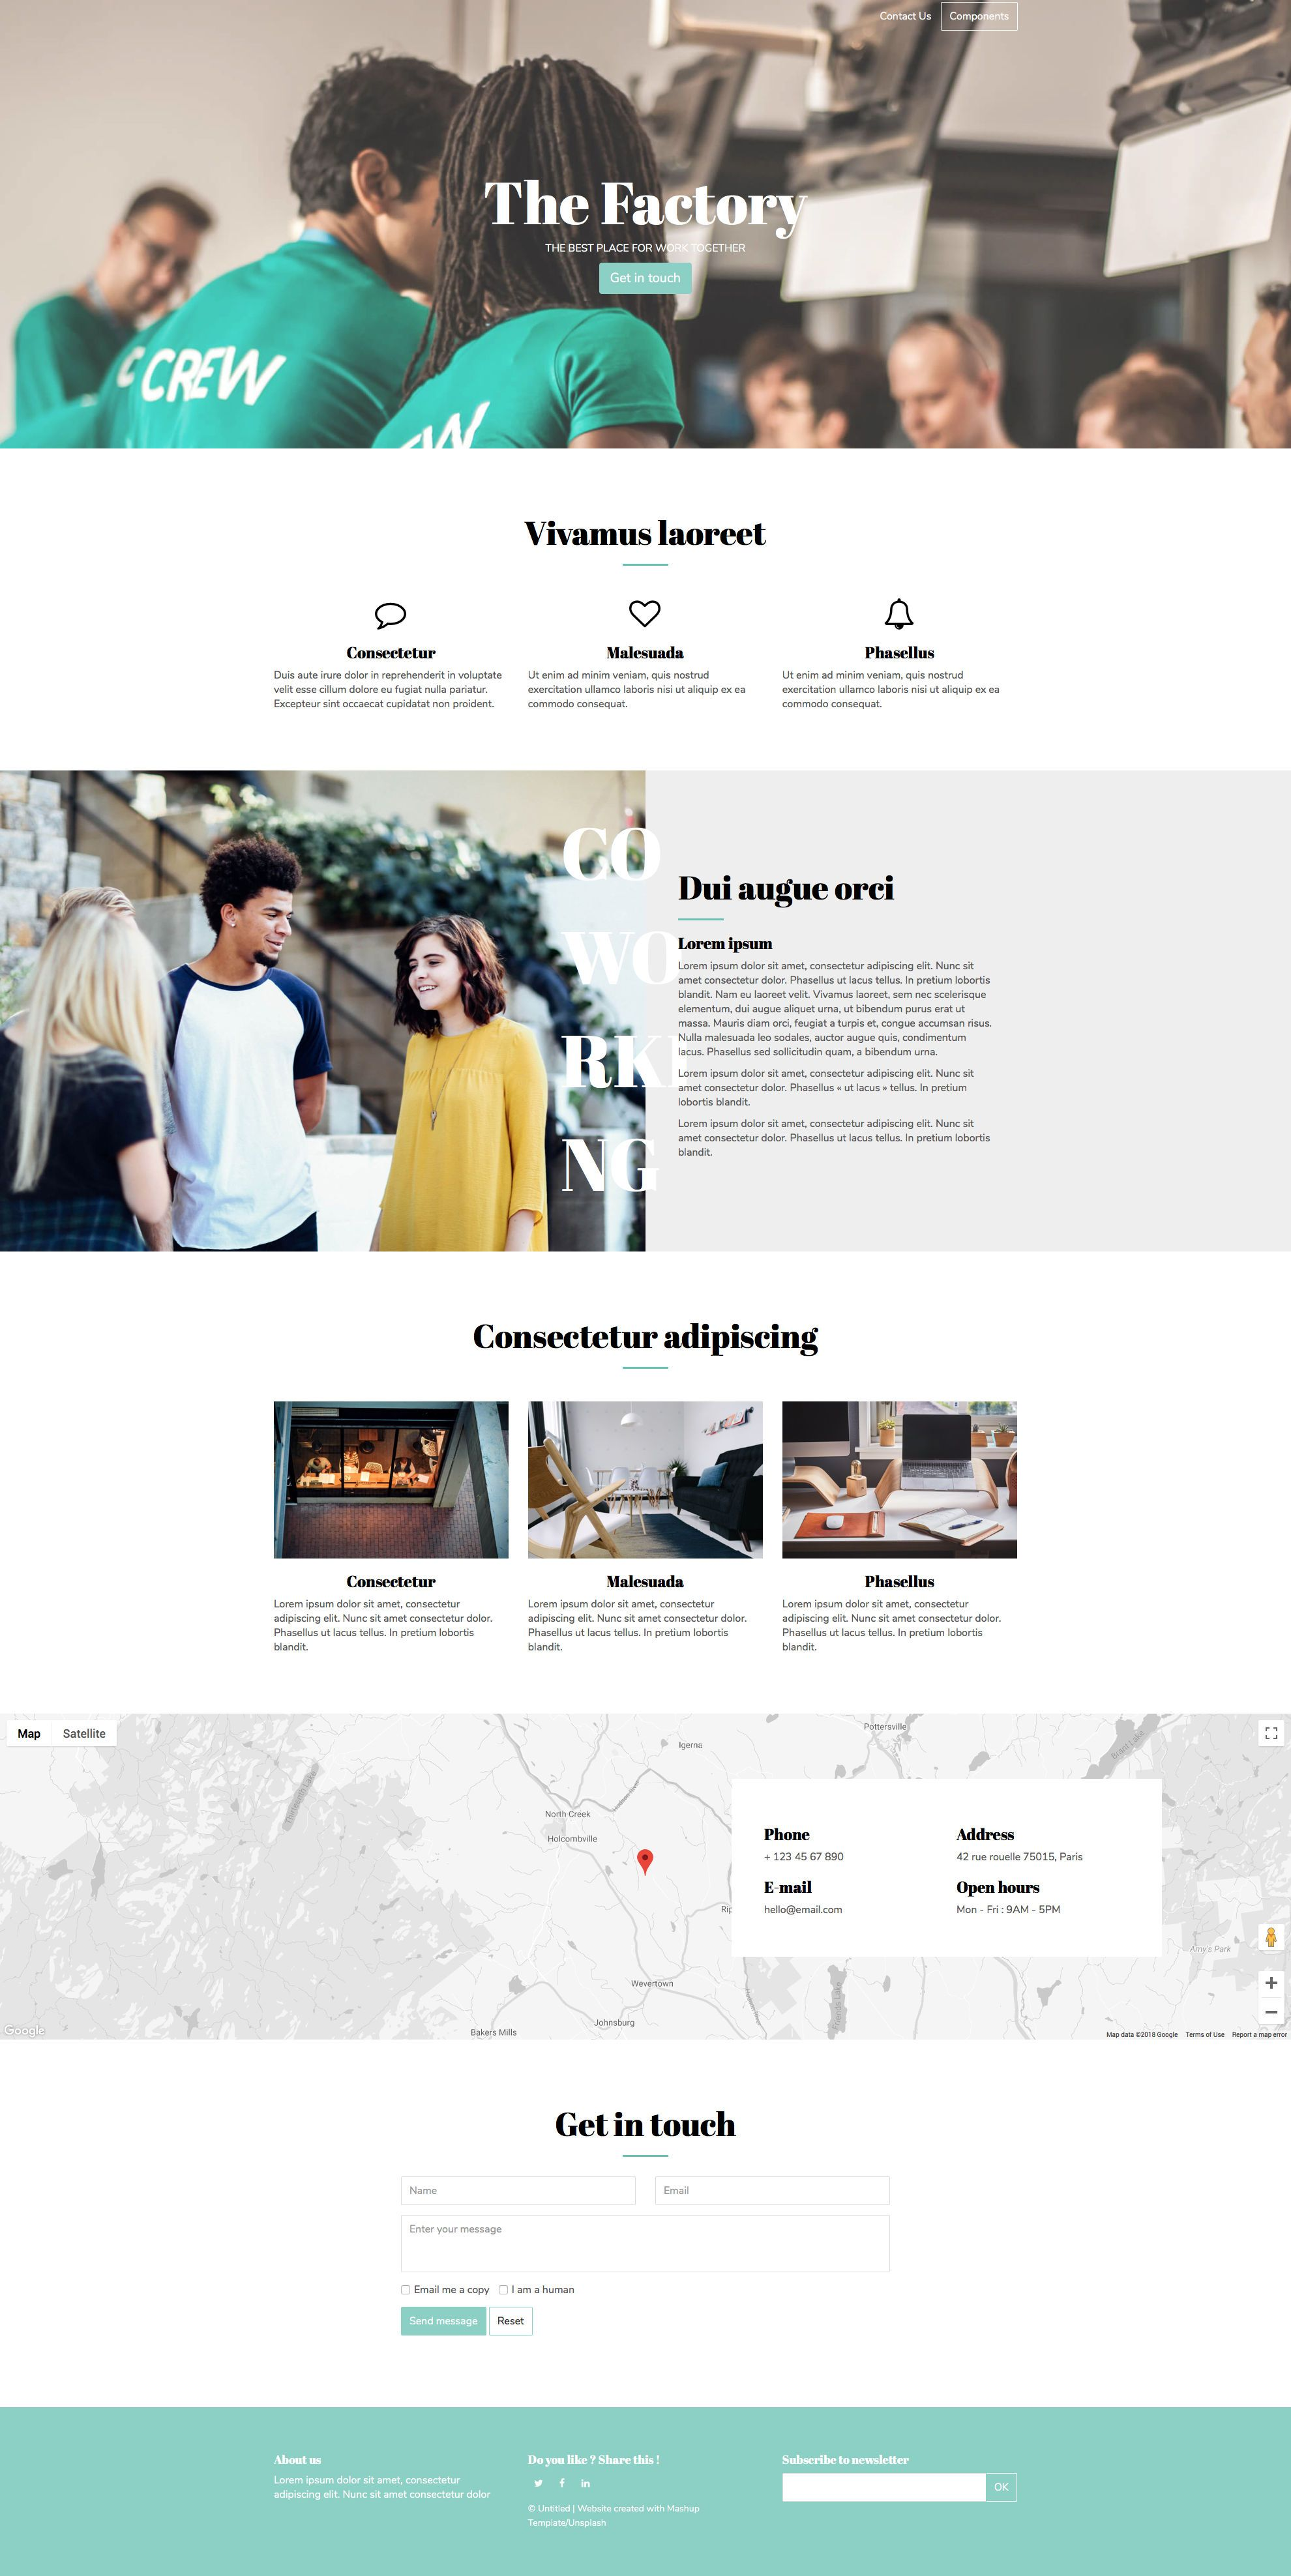 The Factory Free responsive HTML5 Bootstrap Landing page